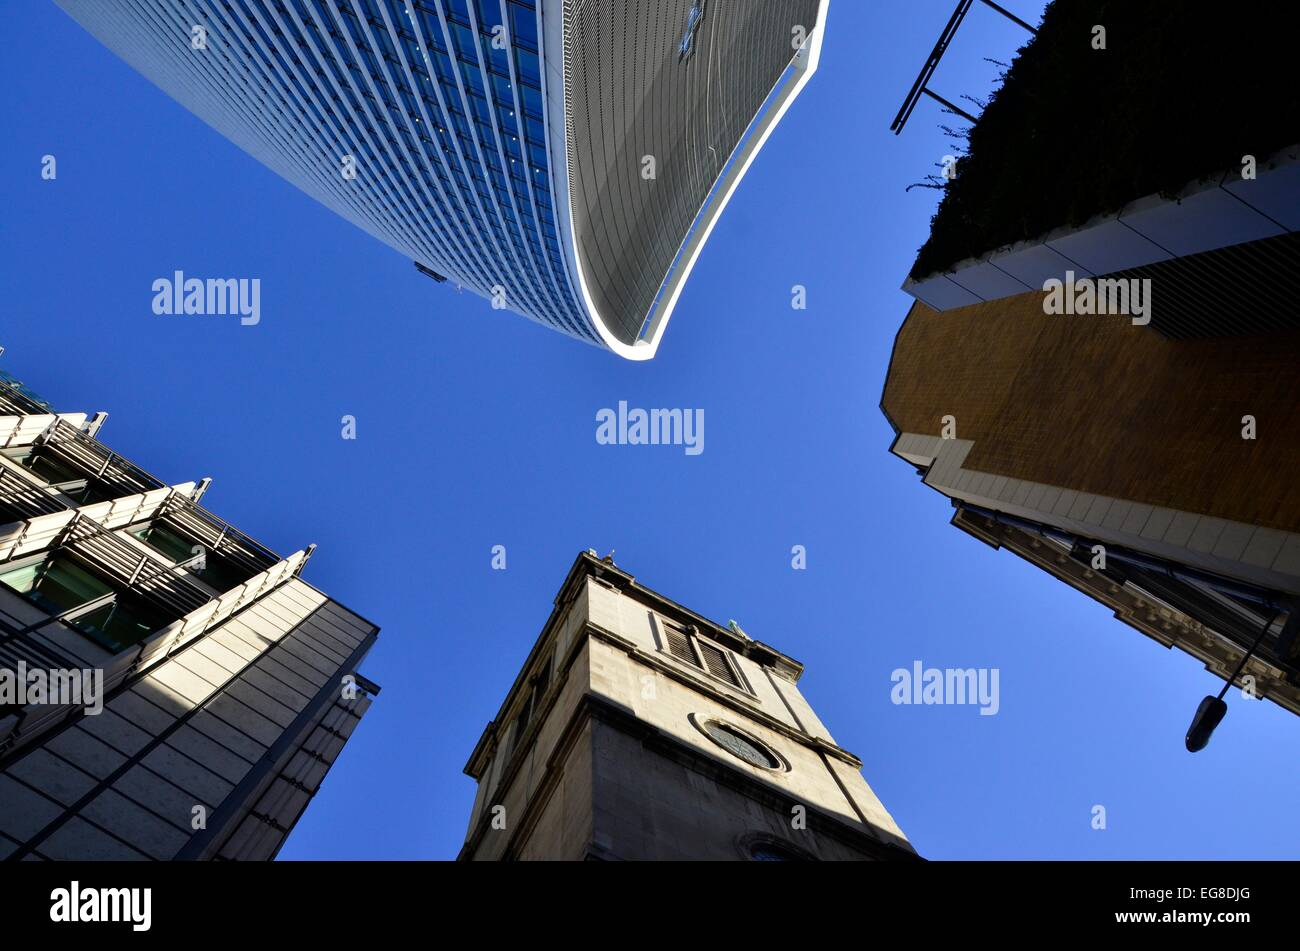 Looking Up on Fenchurch Street, City of London - featuring Wren's St Margaret Pattens Church and the Walkie Talkie Building Stock Photo